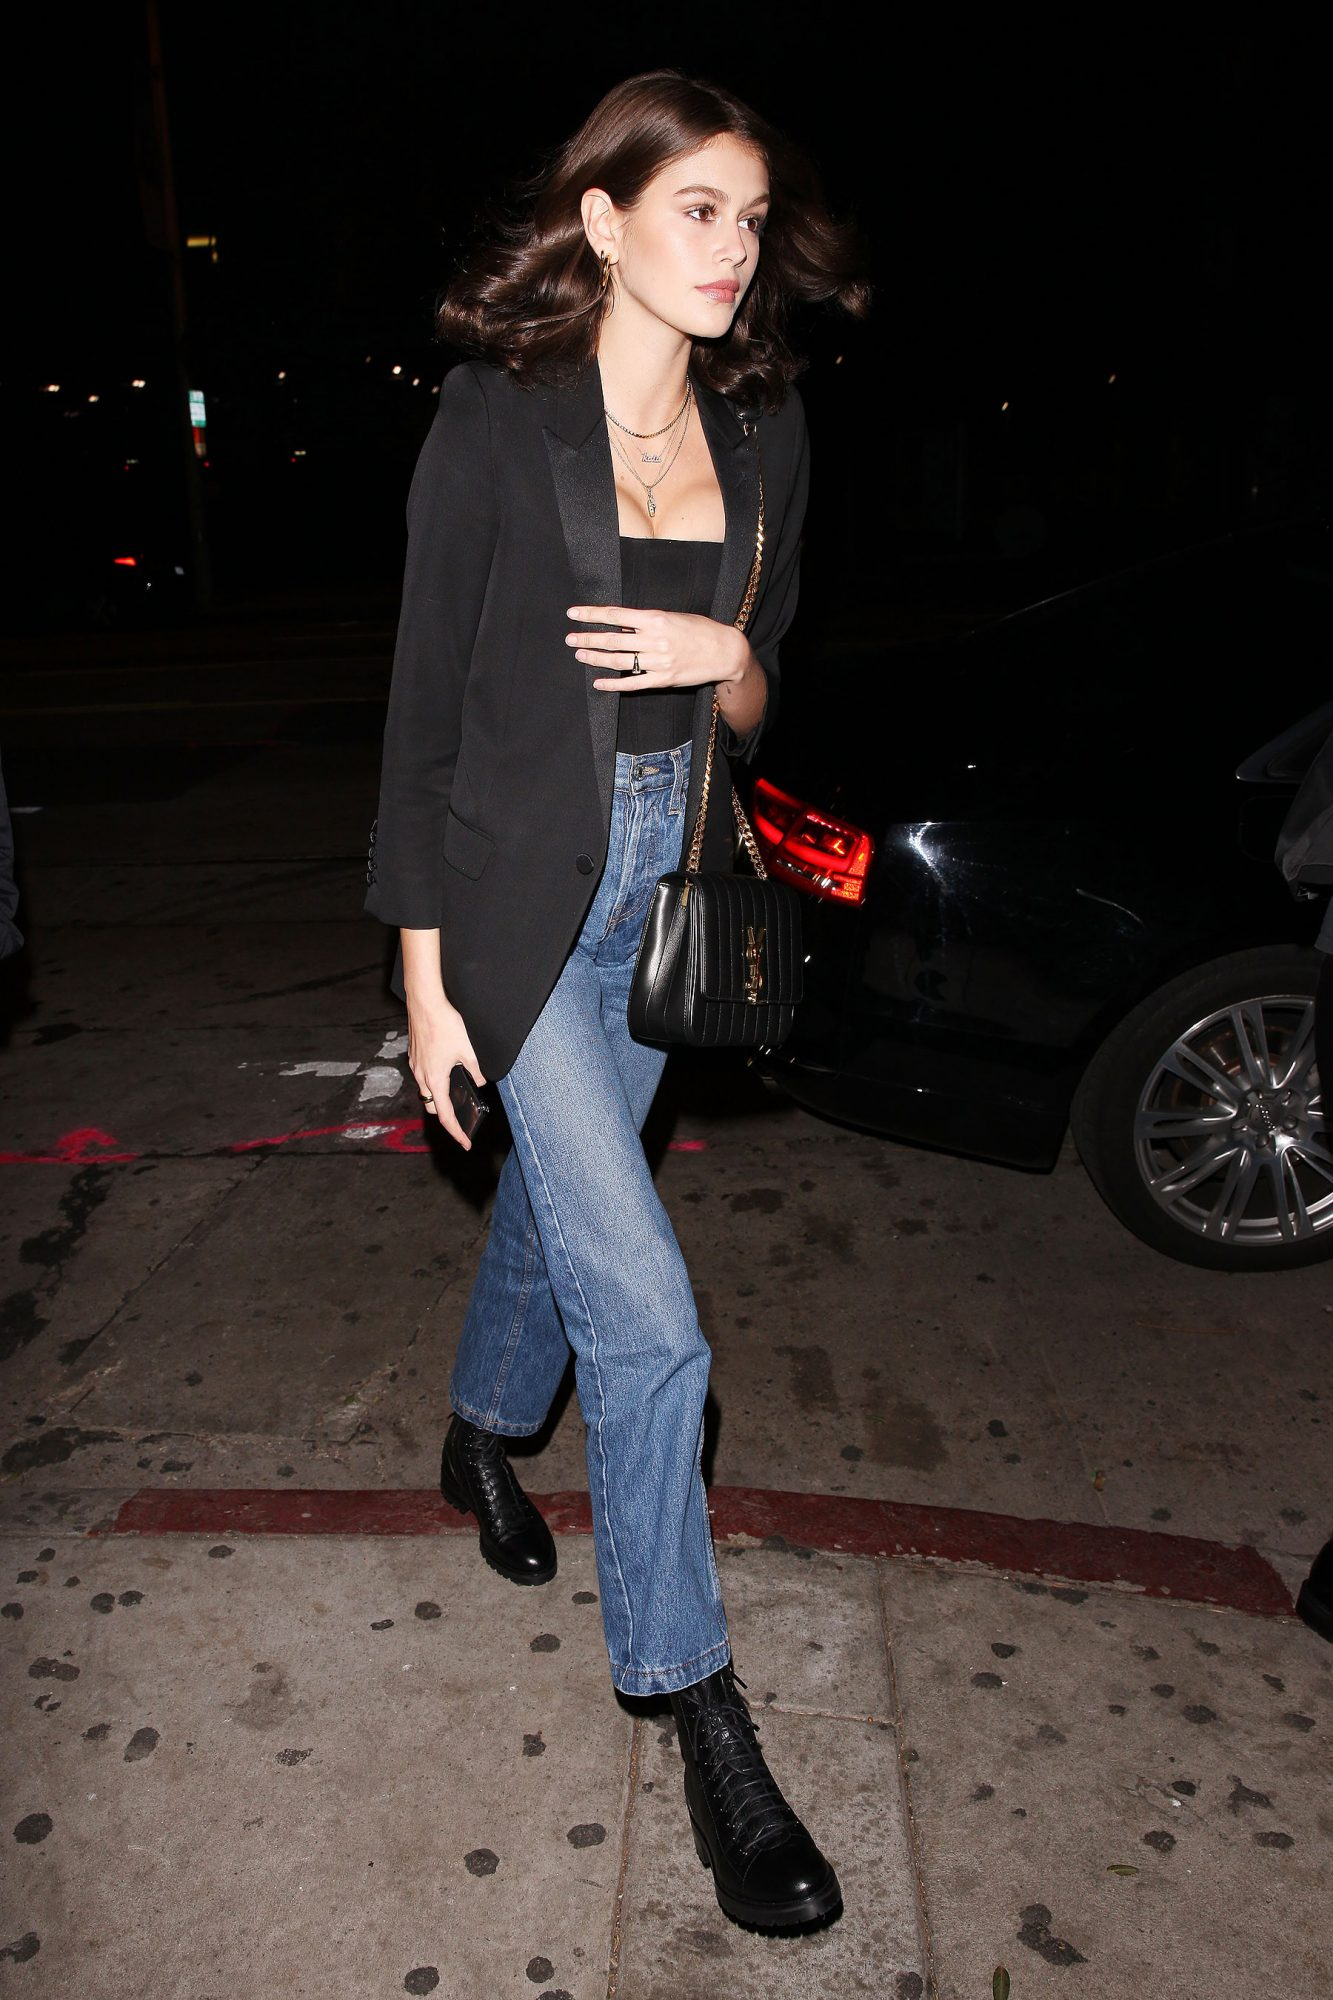 Kaia Gerber is seen leaving the Peppermint club with Charlie Puth after watching Dave Chappelle and John Mayer perform live on stage